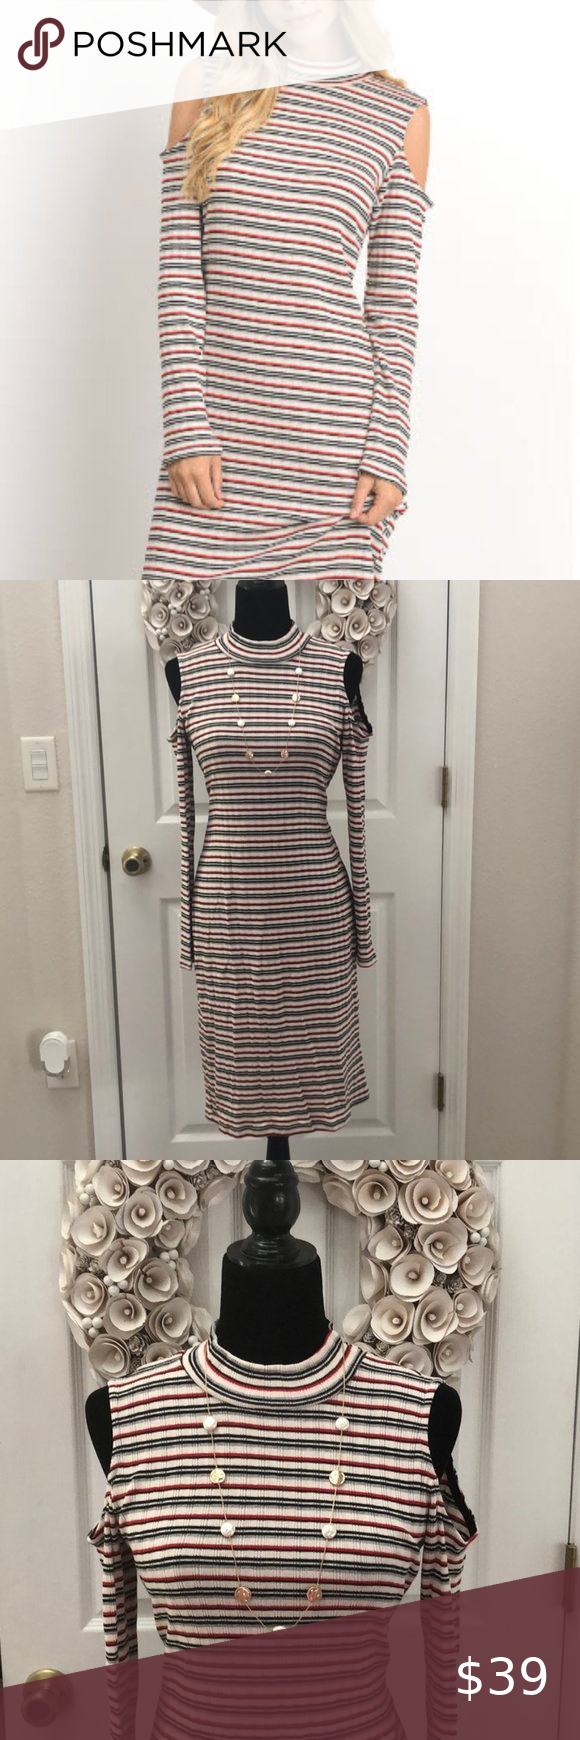 Gilli Stripe Knit Dress With Cold Shoulders In 2020 Striped Knit Dress Kitten Dress Clothes Design [ 1740 x 580 Pixel ]